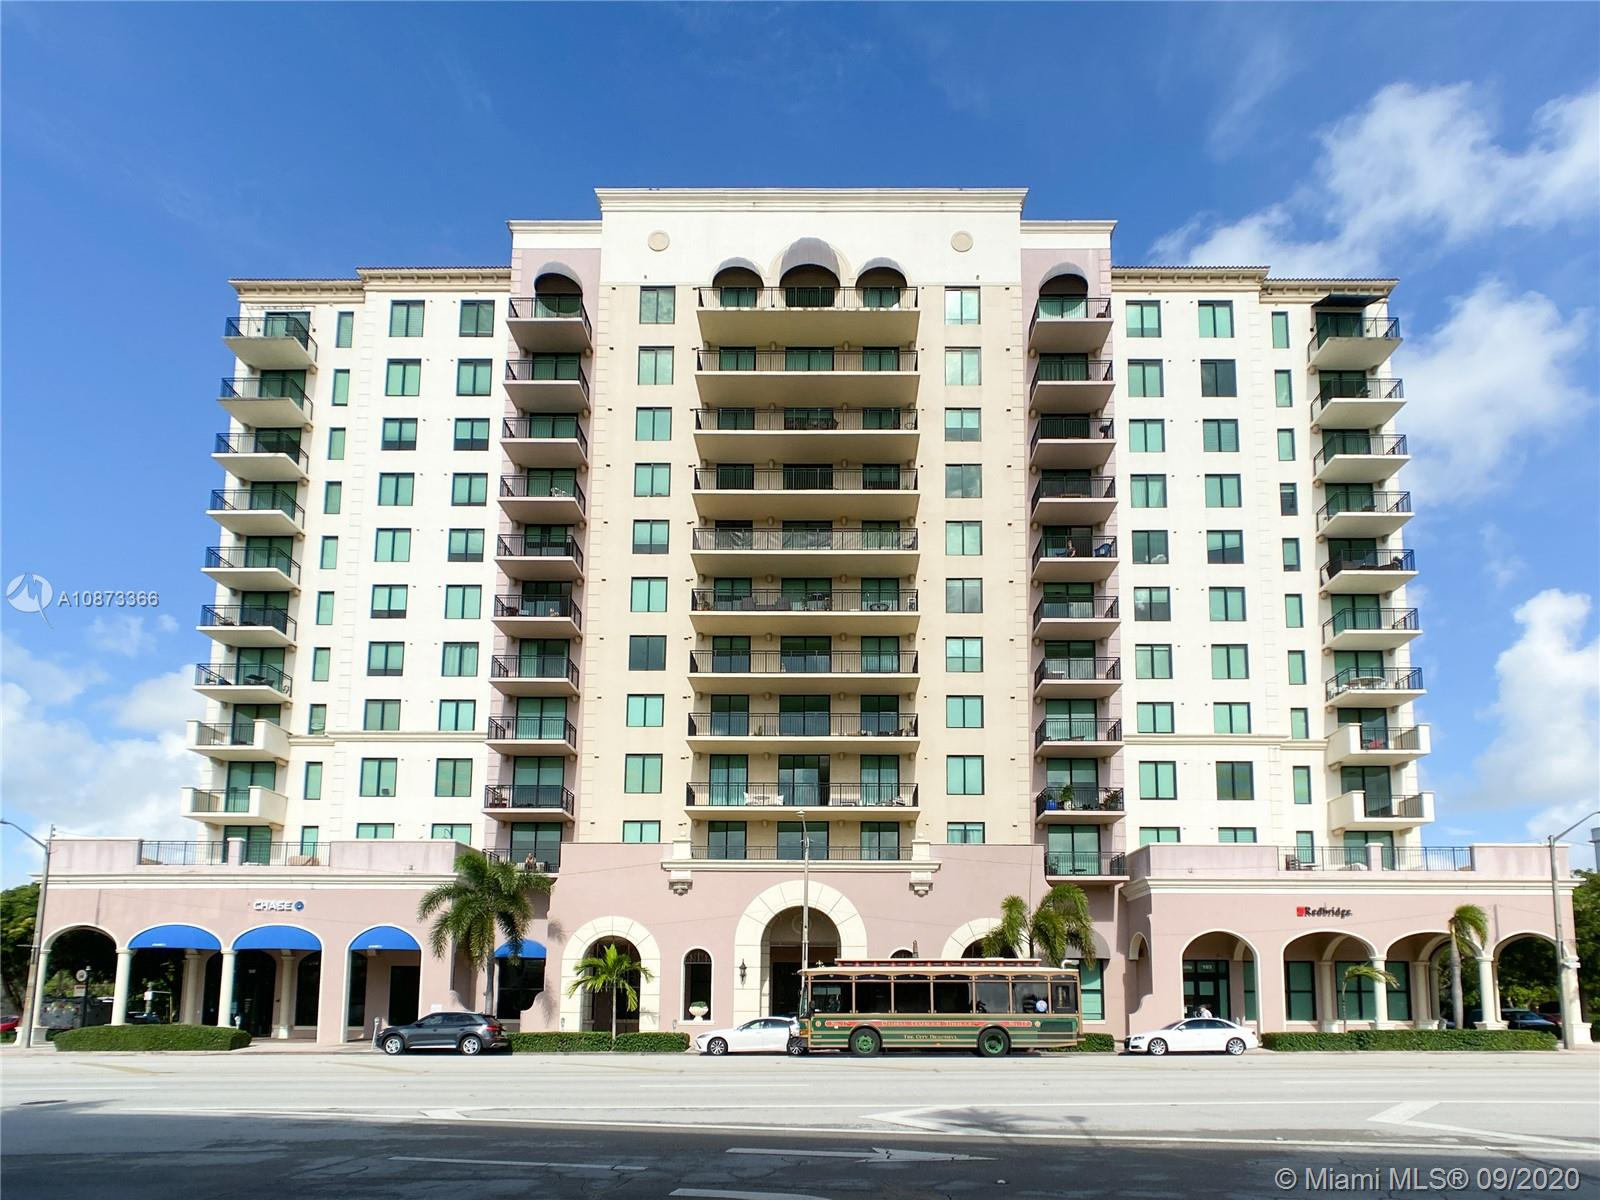 BRIGHT AND SPACIOUS CONDO IN THE HEART OF CORAL GABLES. Unit 809 at 1300 PONCE features an Open balcony with incredible city views. Unit has wood cabinets, stainless stain appliances, impact windows, built in walking closet, etc. Great building amenities include, pool, gym and lounge room. 24 hrs. concierge. Prime location; close to airport and major expressways and walking distance to Miracle Mile, restaurants, shops and much more. A great investment opportunity, must see!